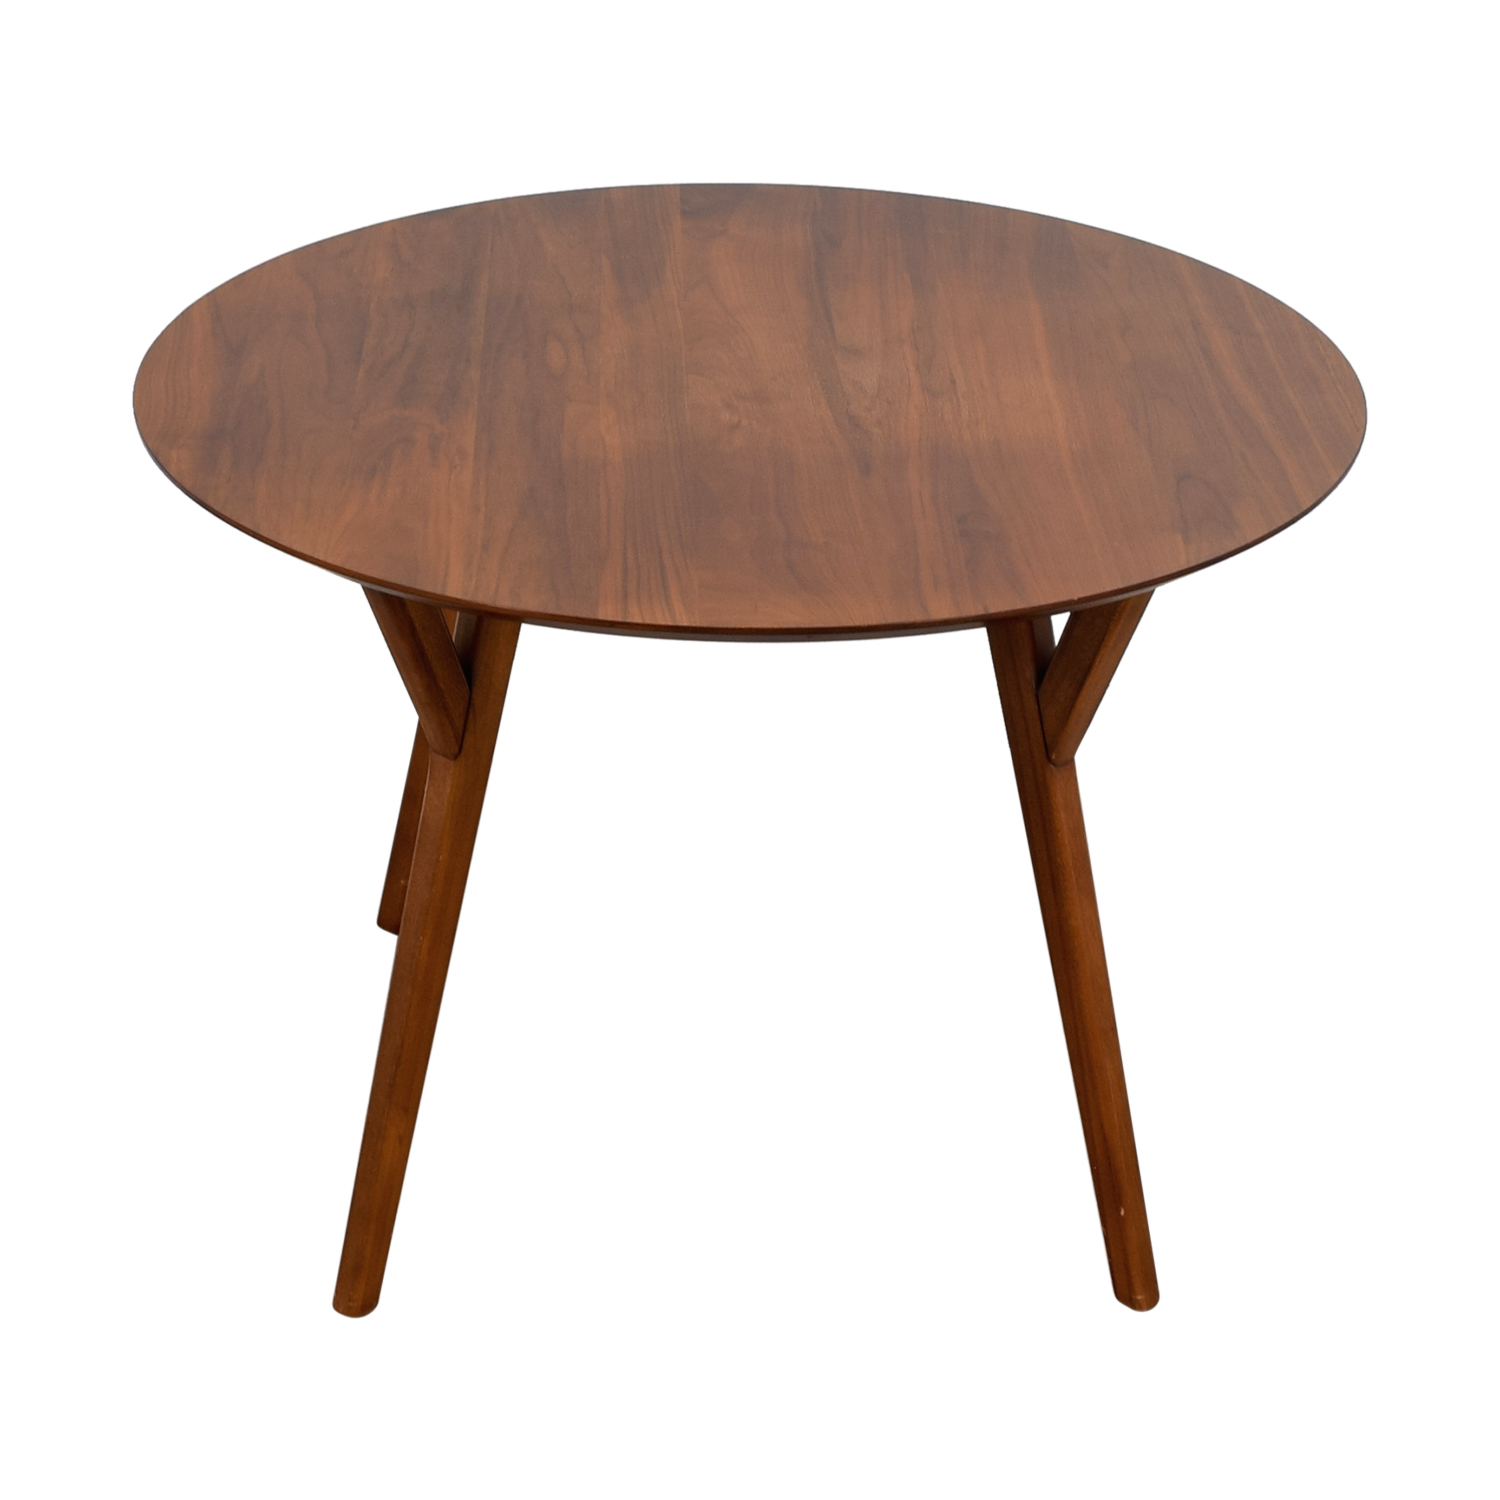 3% OFF - West Elm West Elm Mid-Century Walnut Round Dining Table / Tables